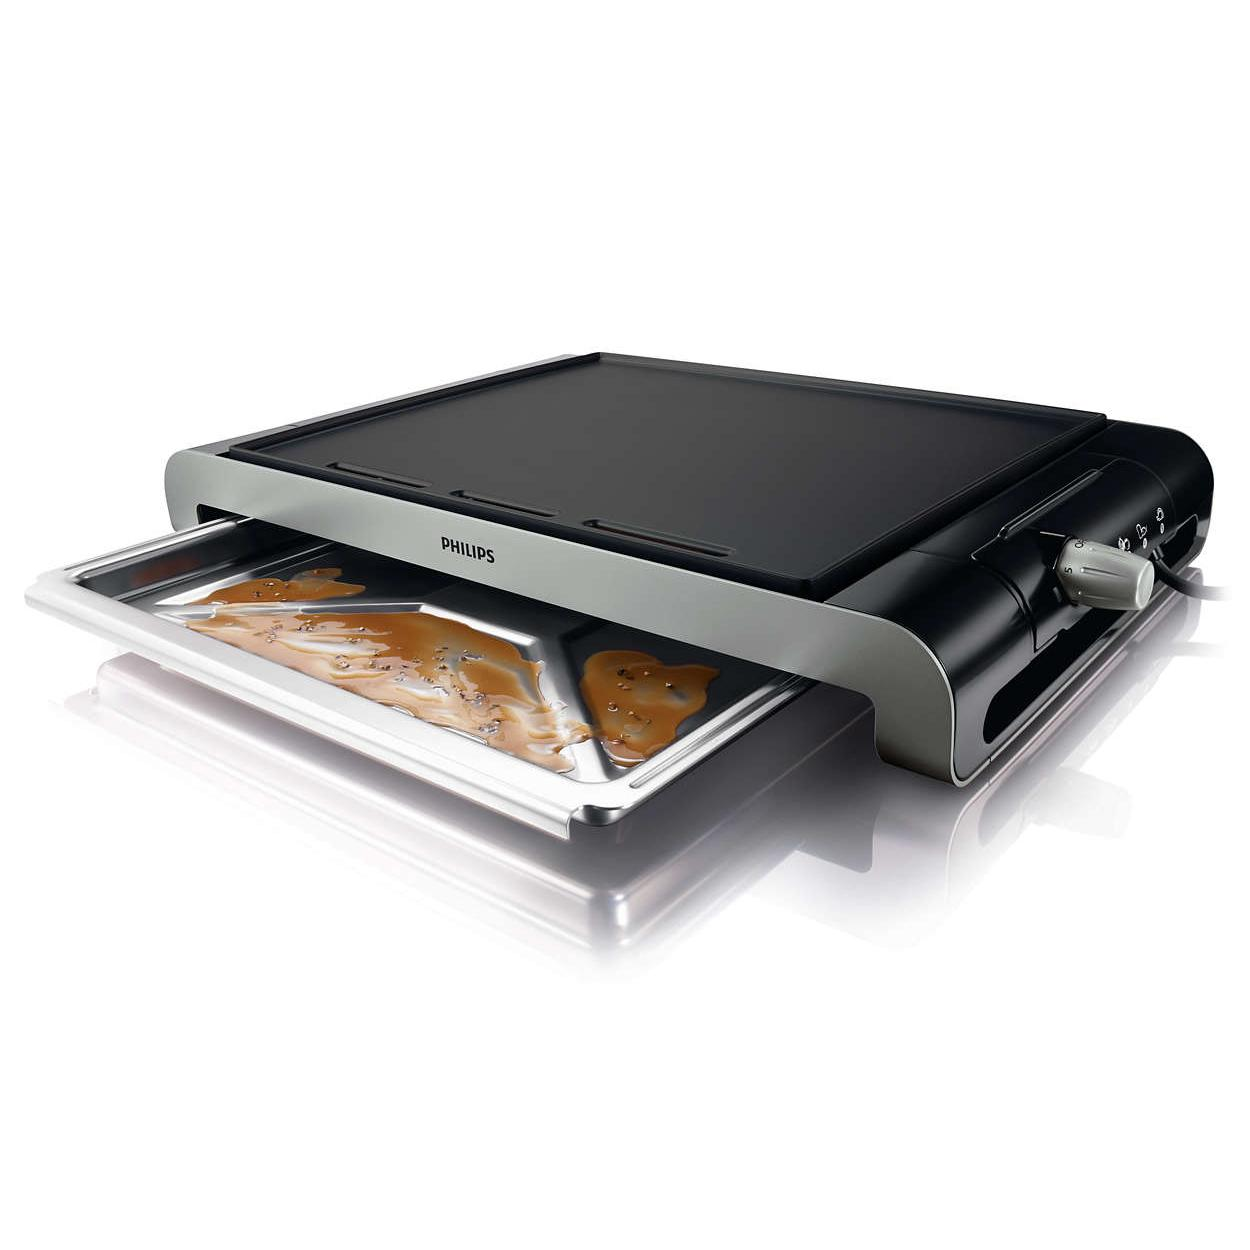 Plancha Philips HD4430/20 - 2300W